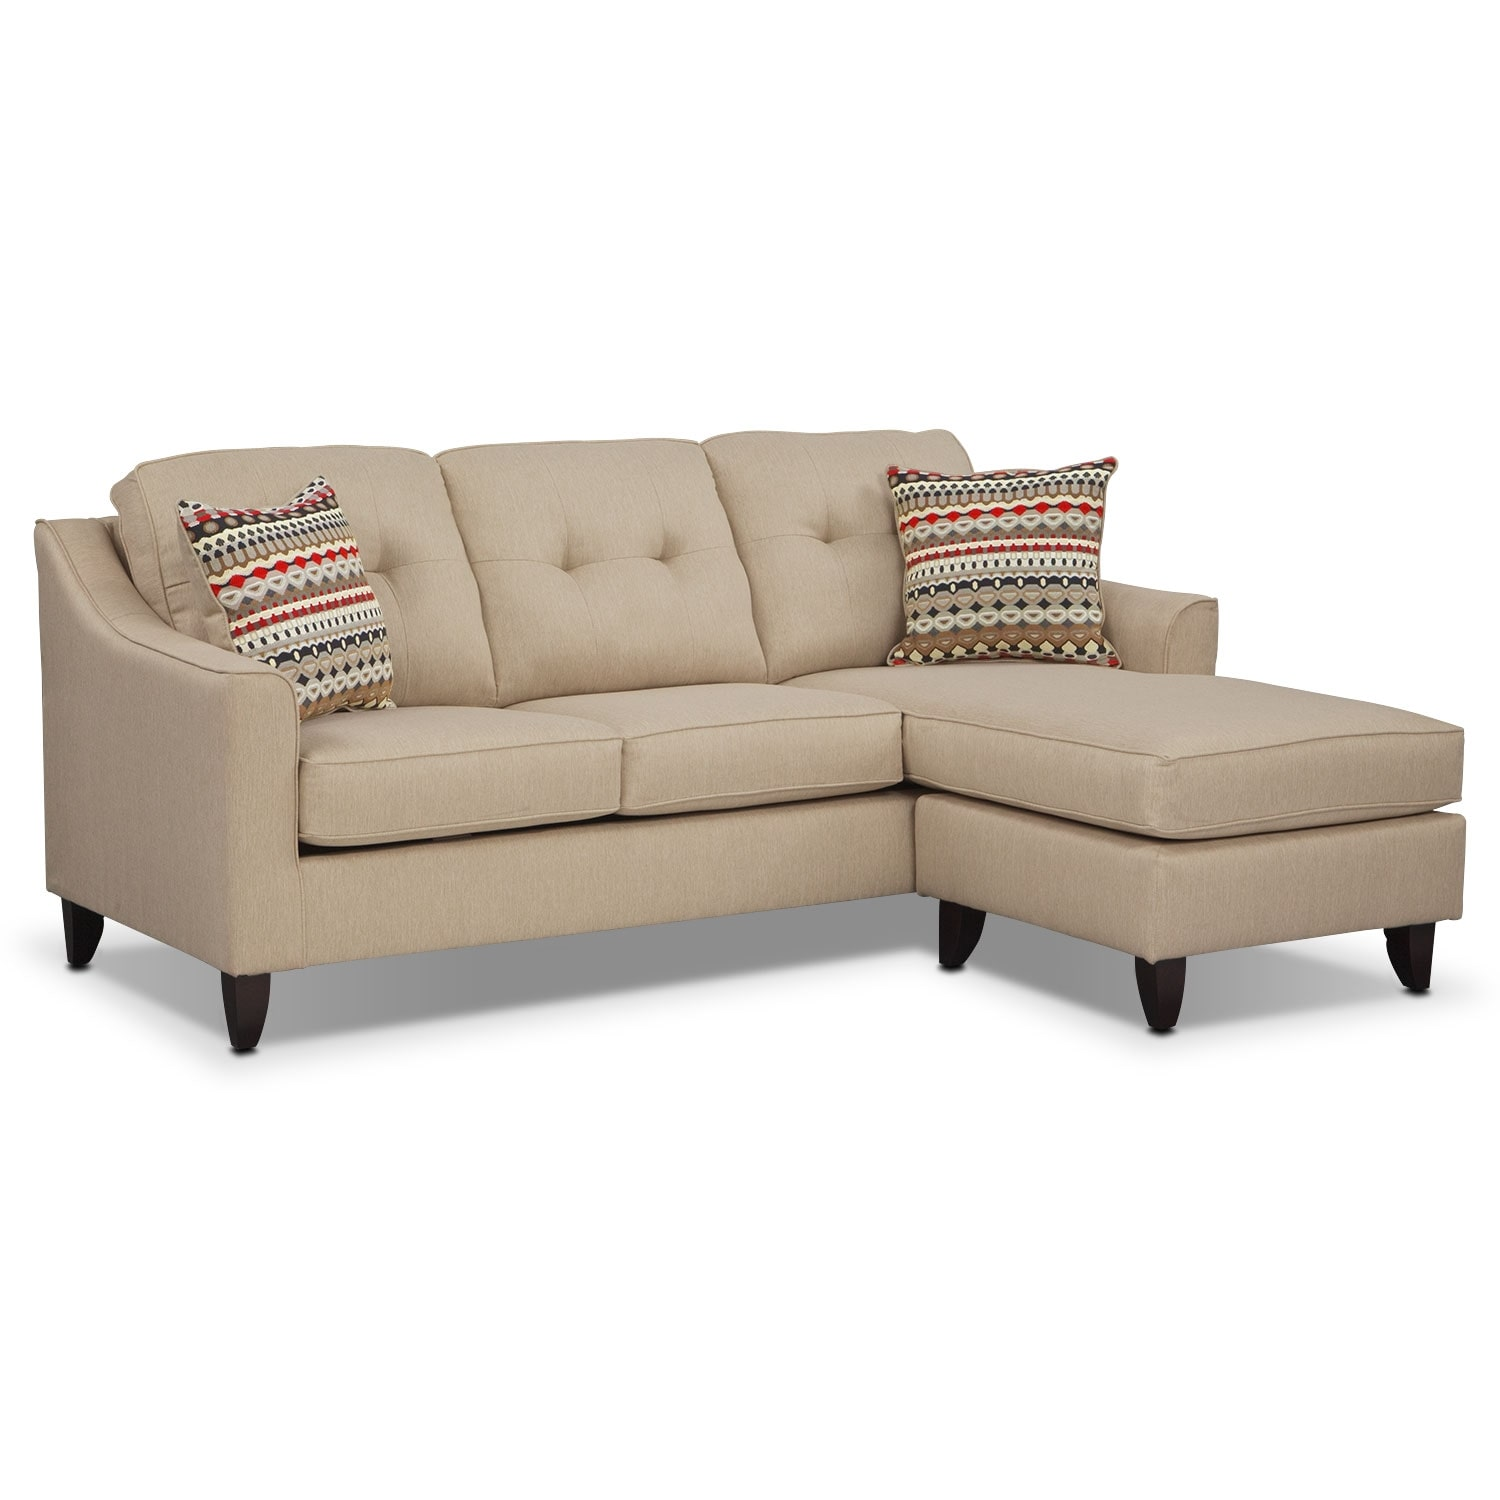 Marco Chaise Sofa - Cream